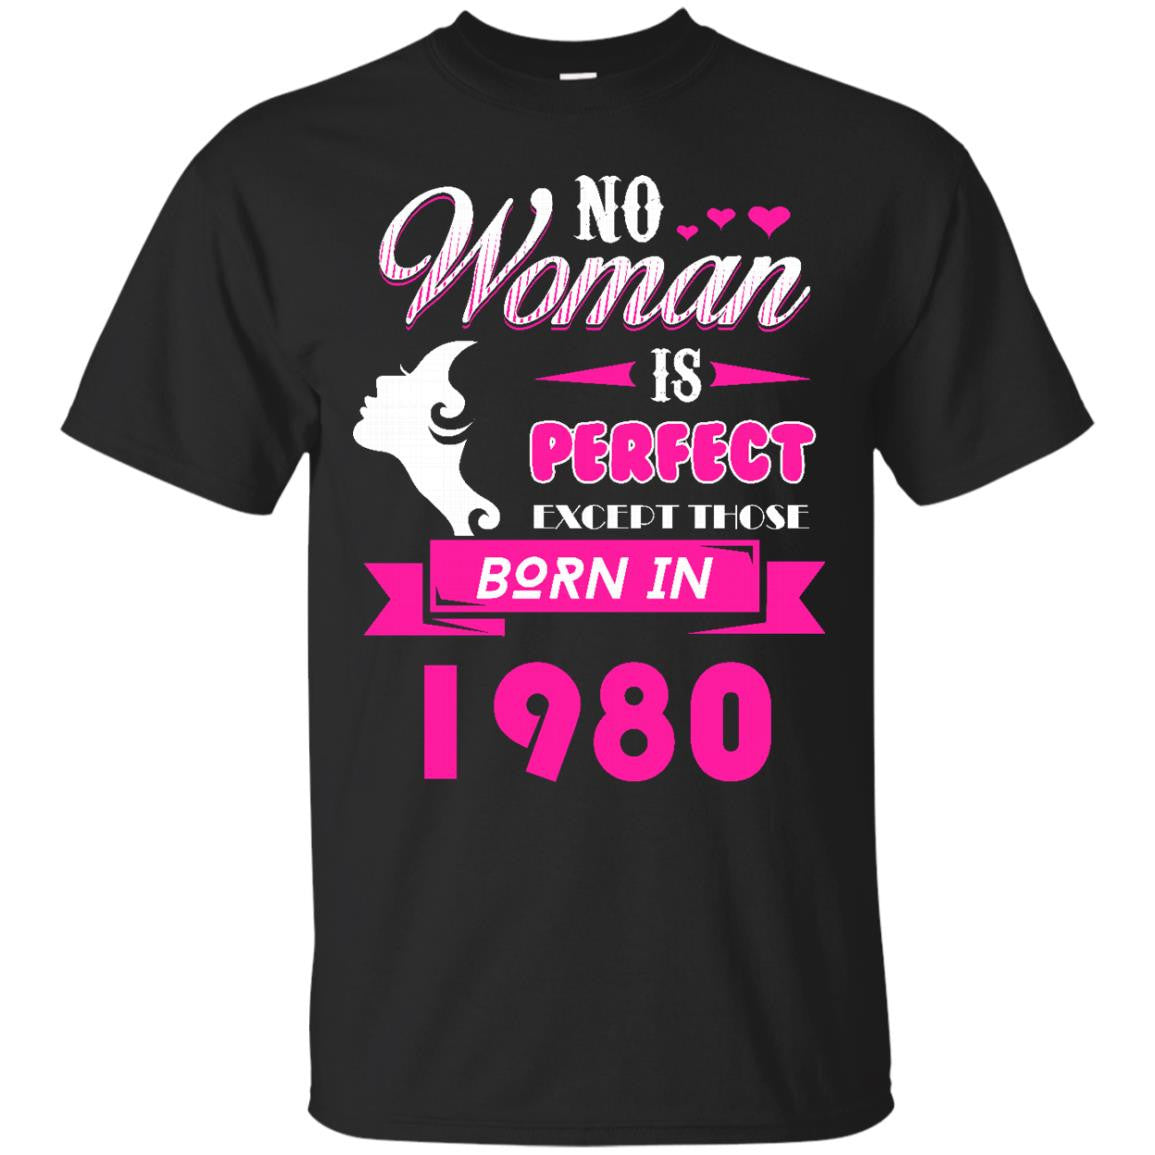 1980 Woman Shirts No Woman Perfect Except Those In 1980 T-shirts Hoodies Sweatshirts